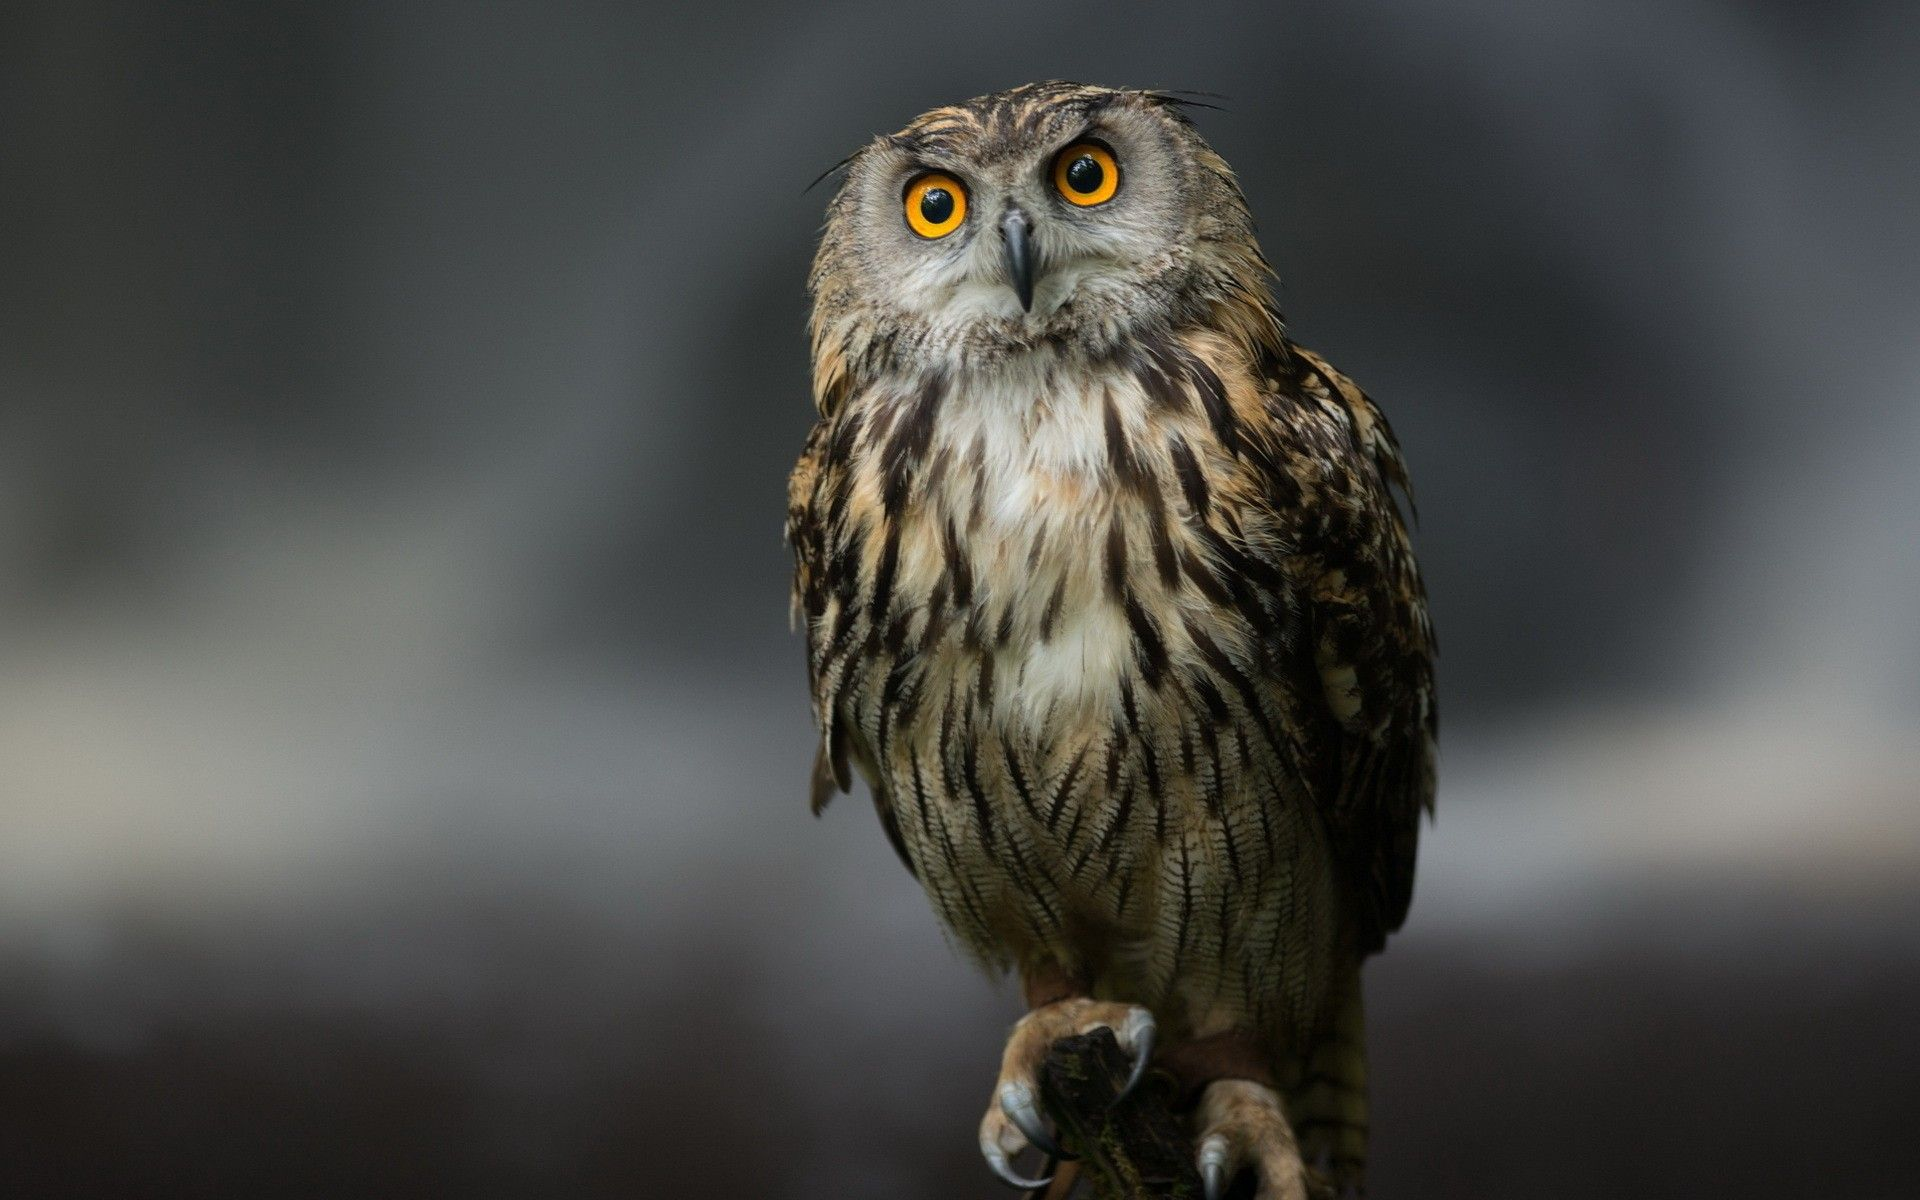 Ultra HD Owl Serious look Owl wallpaper, Owl, Owl pictures